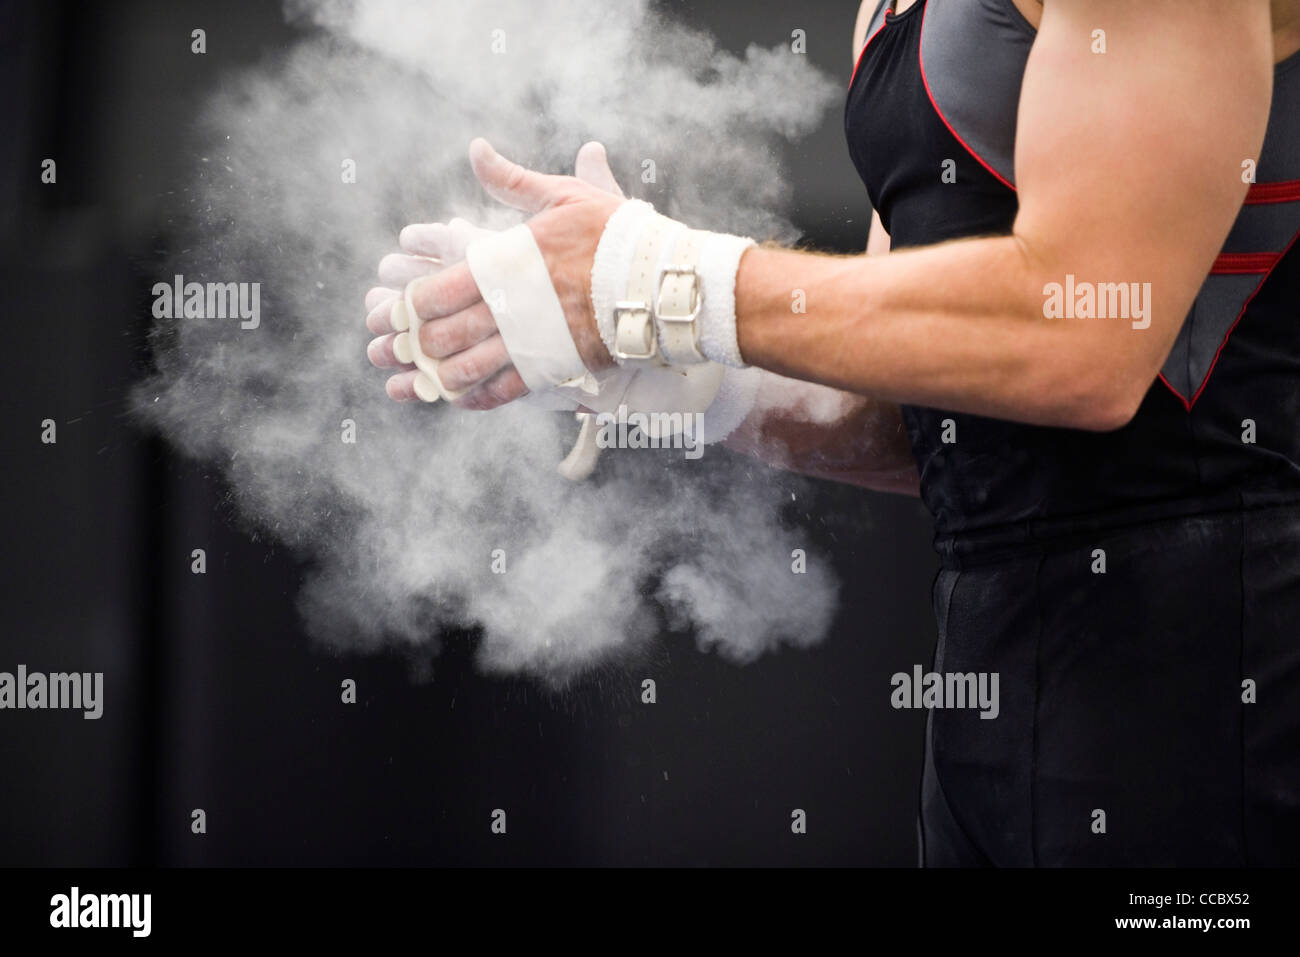 Gymnast applying chalk power to hands in preparation - Stock Image